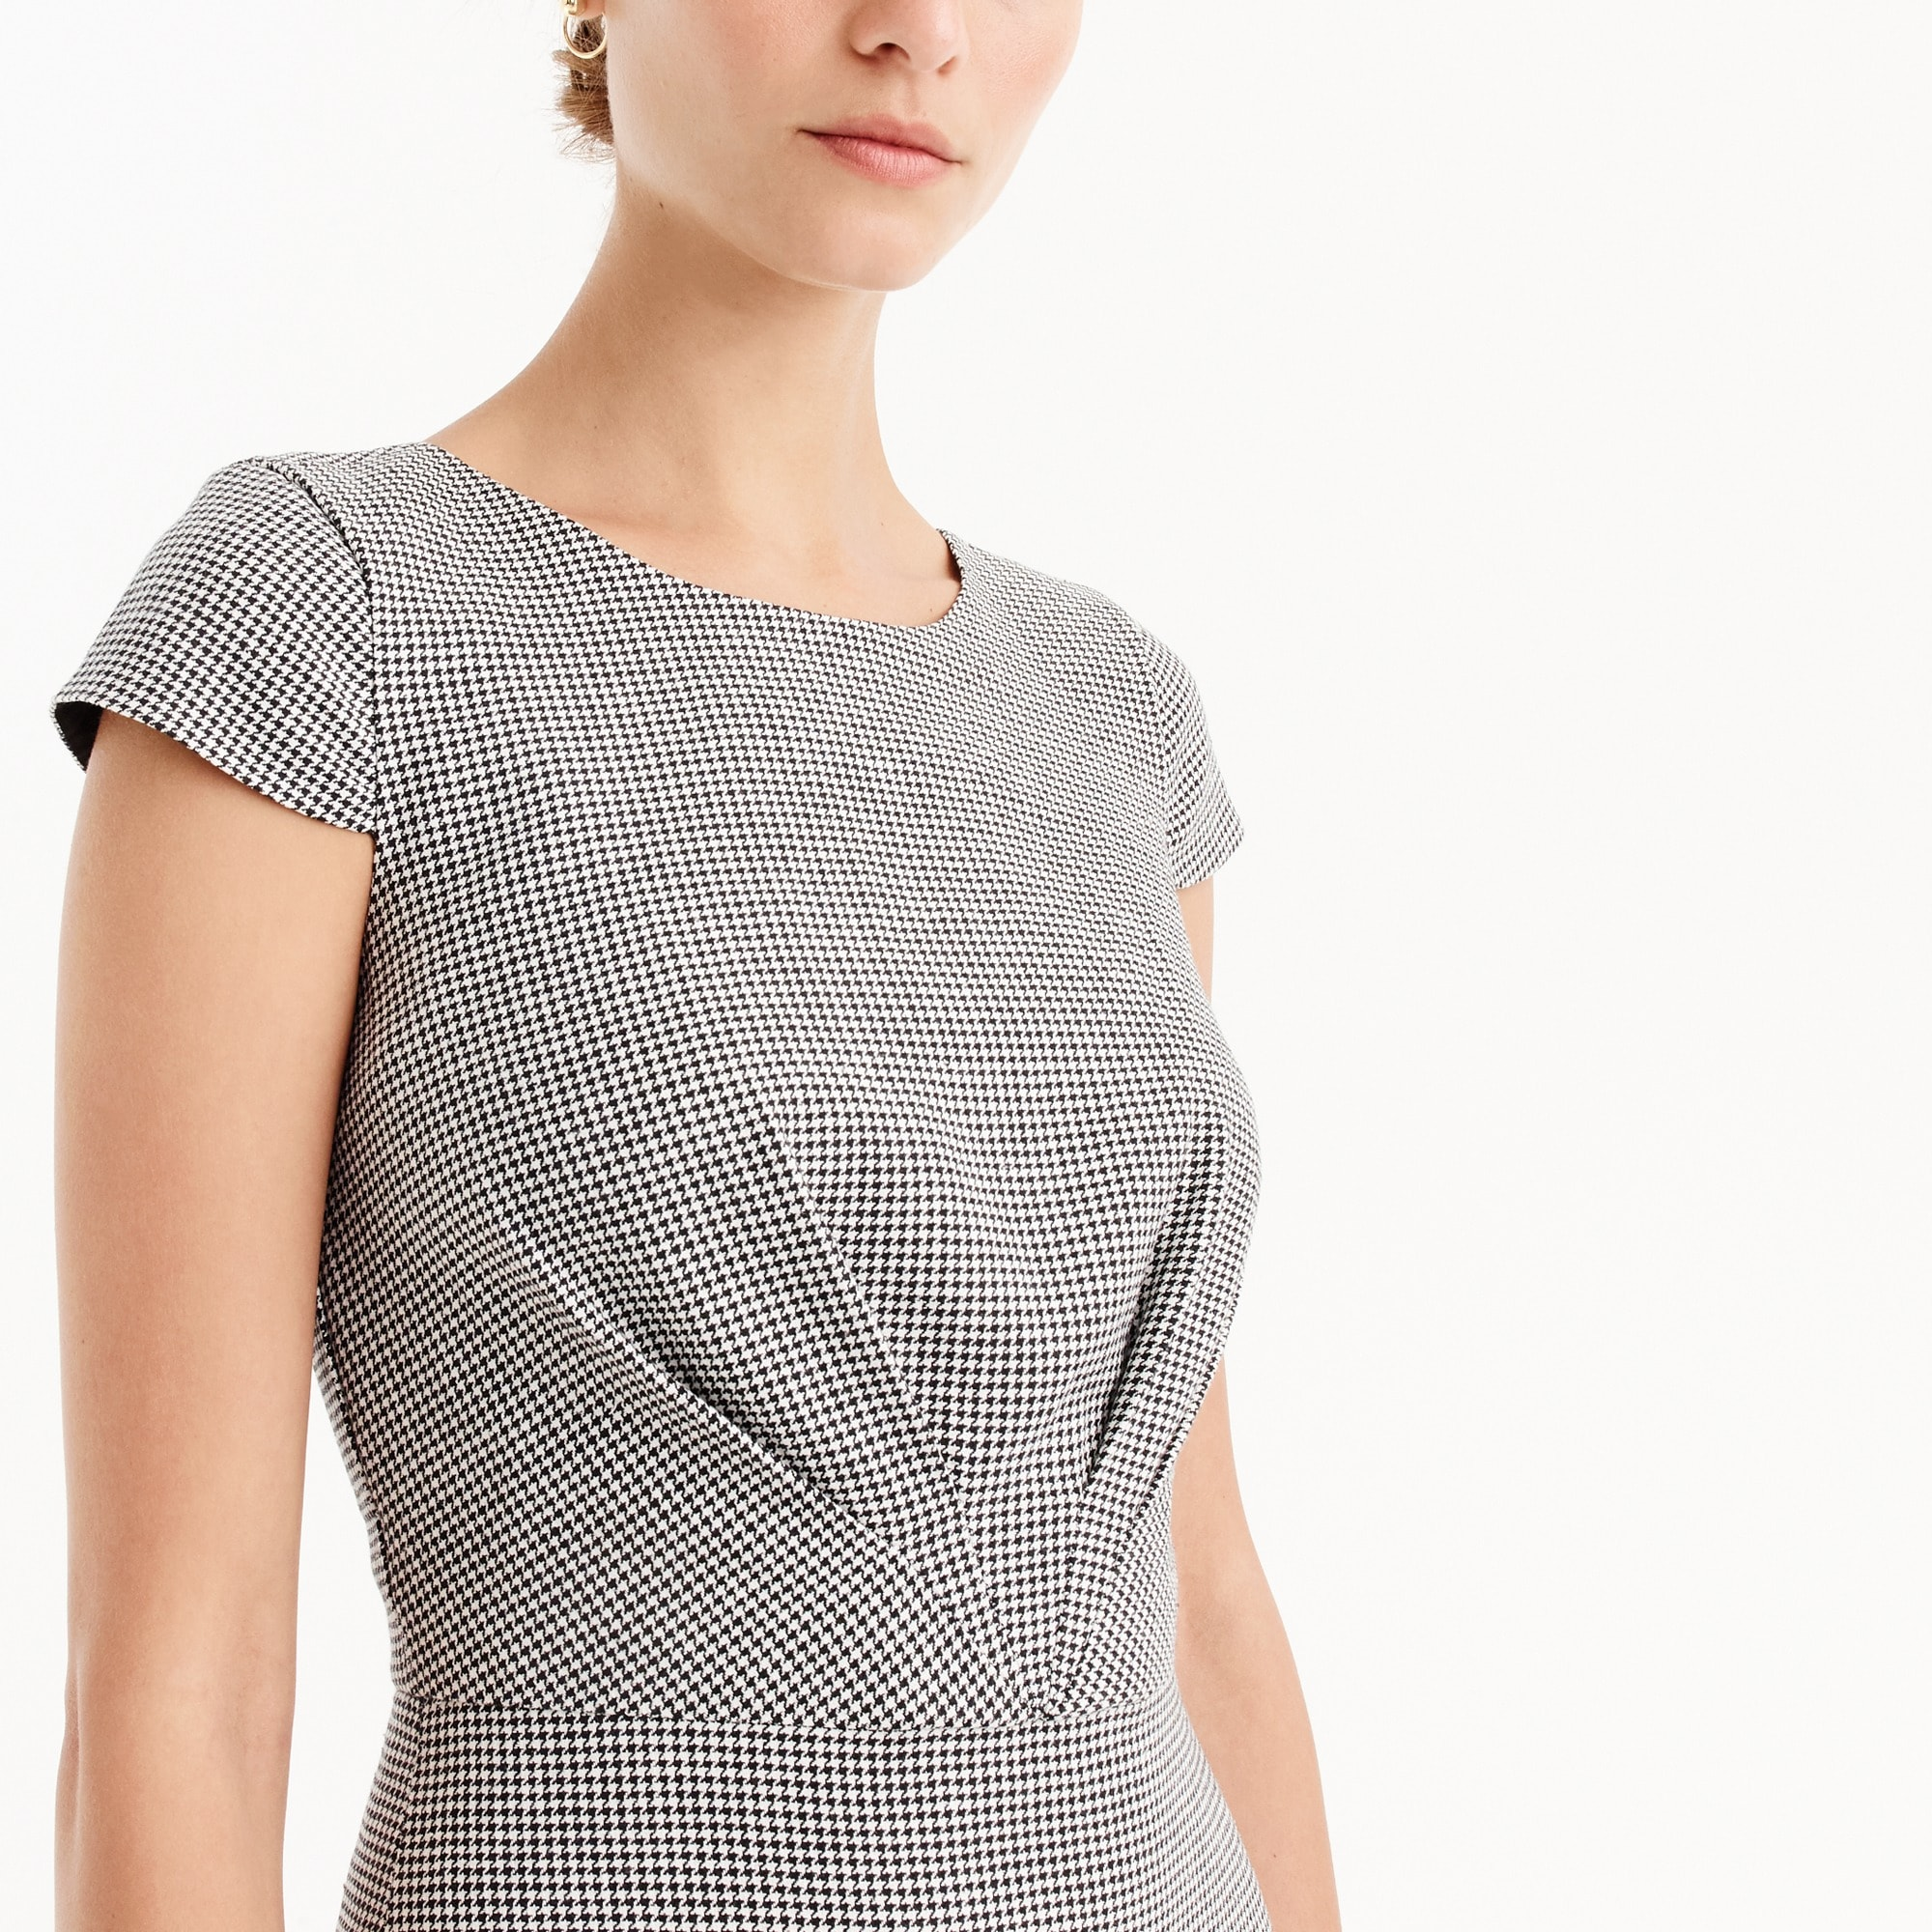 Tie-front dress in mini-houndstooth